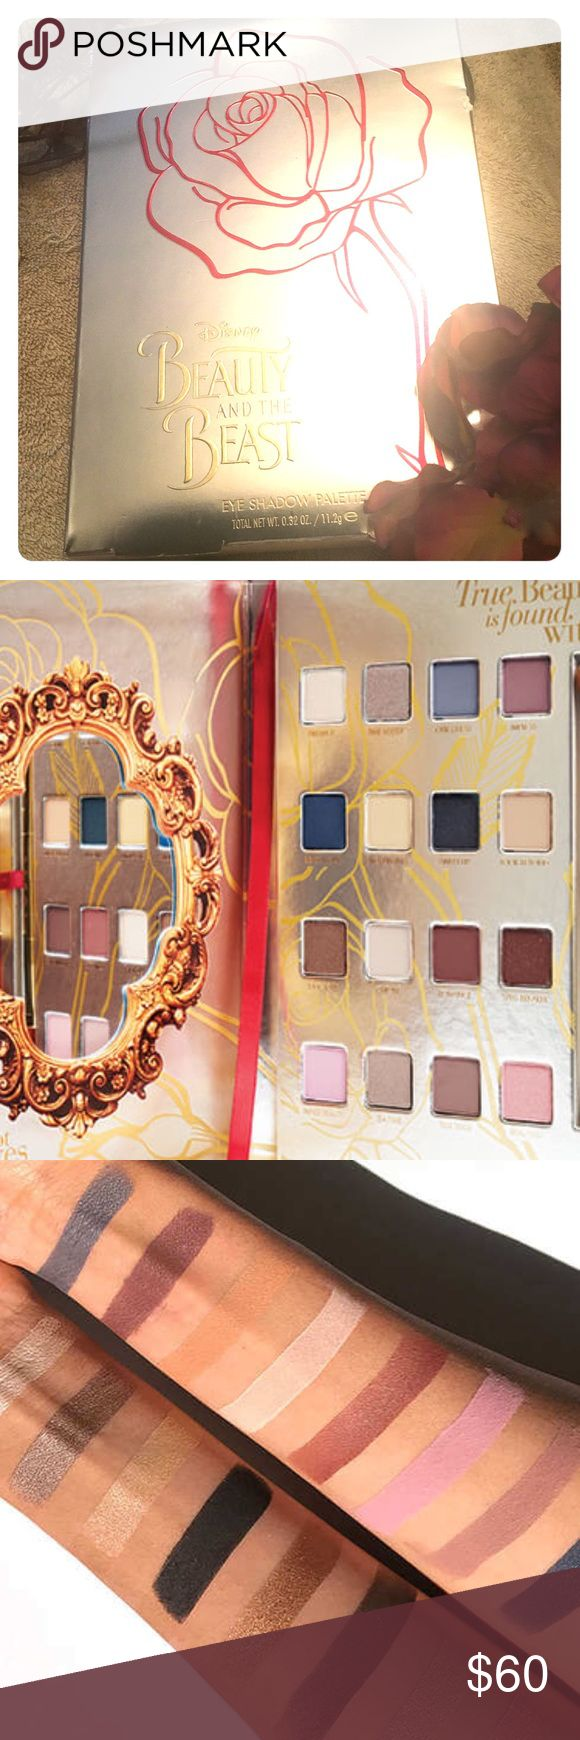 LORAC Beauty and the Beast Palette Inspired by Belles steadfast strength and undeniable beauty, this limited edition palette takes you on an imaginary journey of wonder and romance.  You'll be enchanted with these 16 all-new and exclusive shades.  BNIB and never used, box factory sealed. Reasonable offers considered.   *Due to an eye condition the lighting in my house is off.  Please refer to the stock photos for best view of the colors. lorac Makeup Eyeshadow